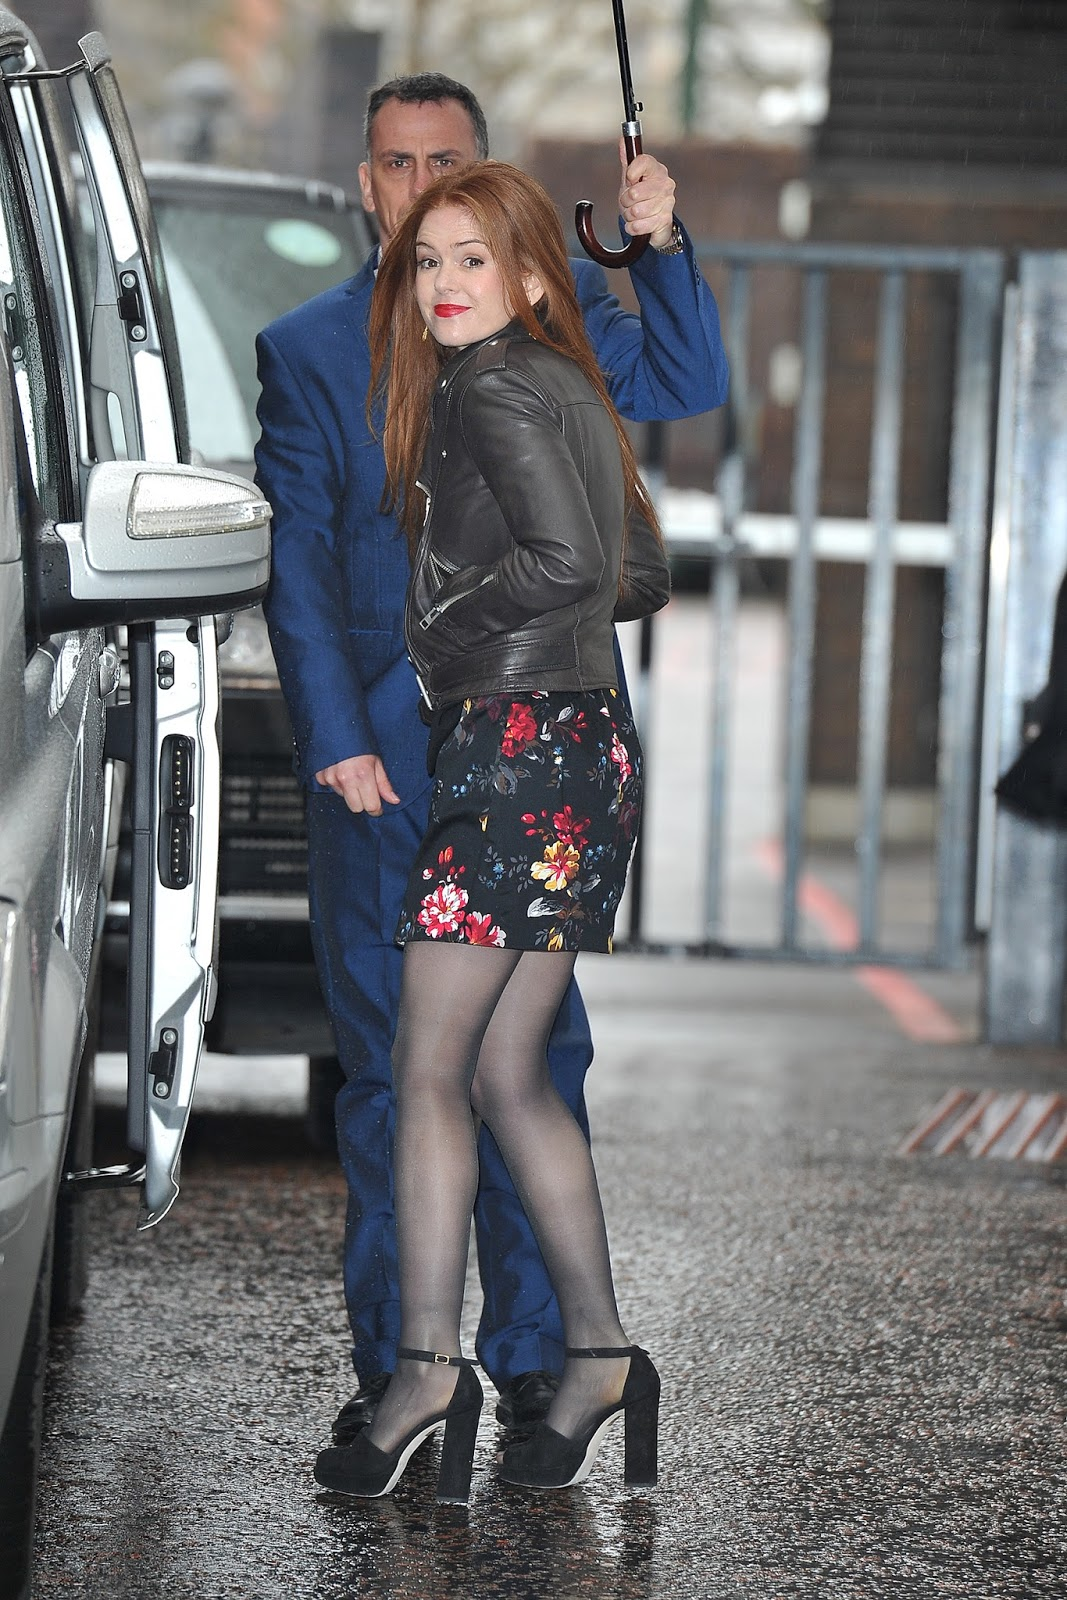 Islafisher 04 Coloured Pantyhose Outfit